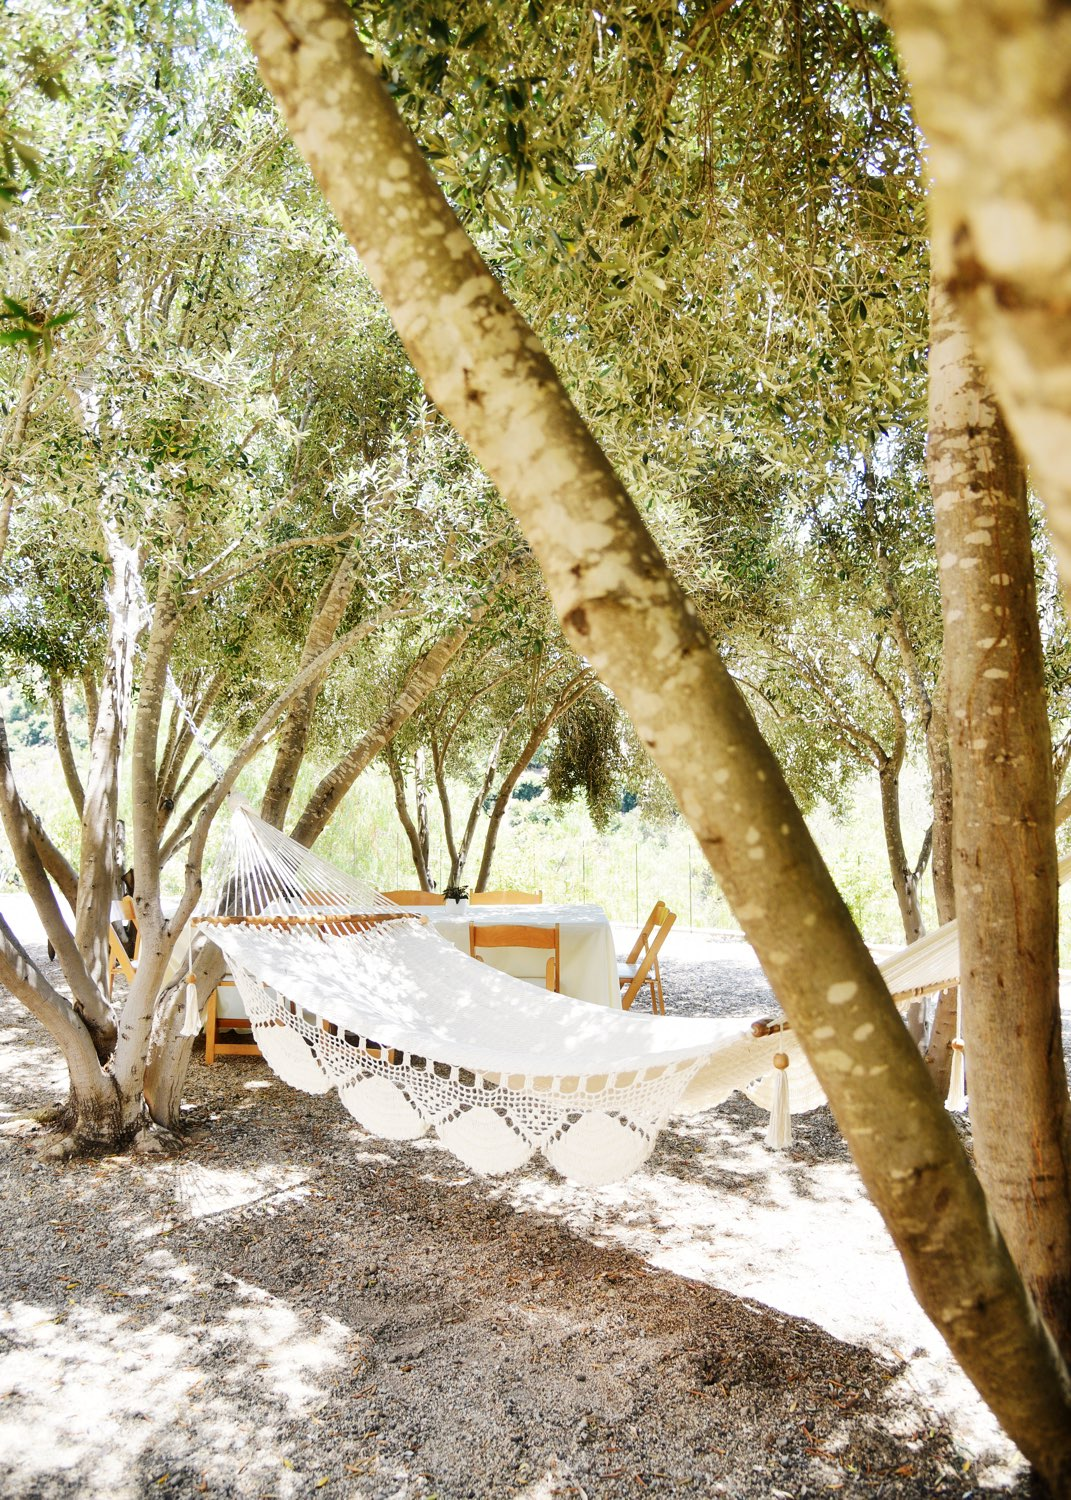 Just one of any secret, shaded spots to dream the day away.